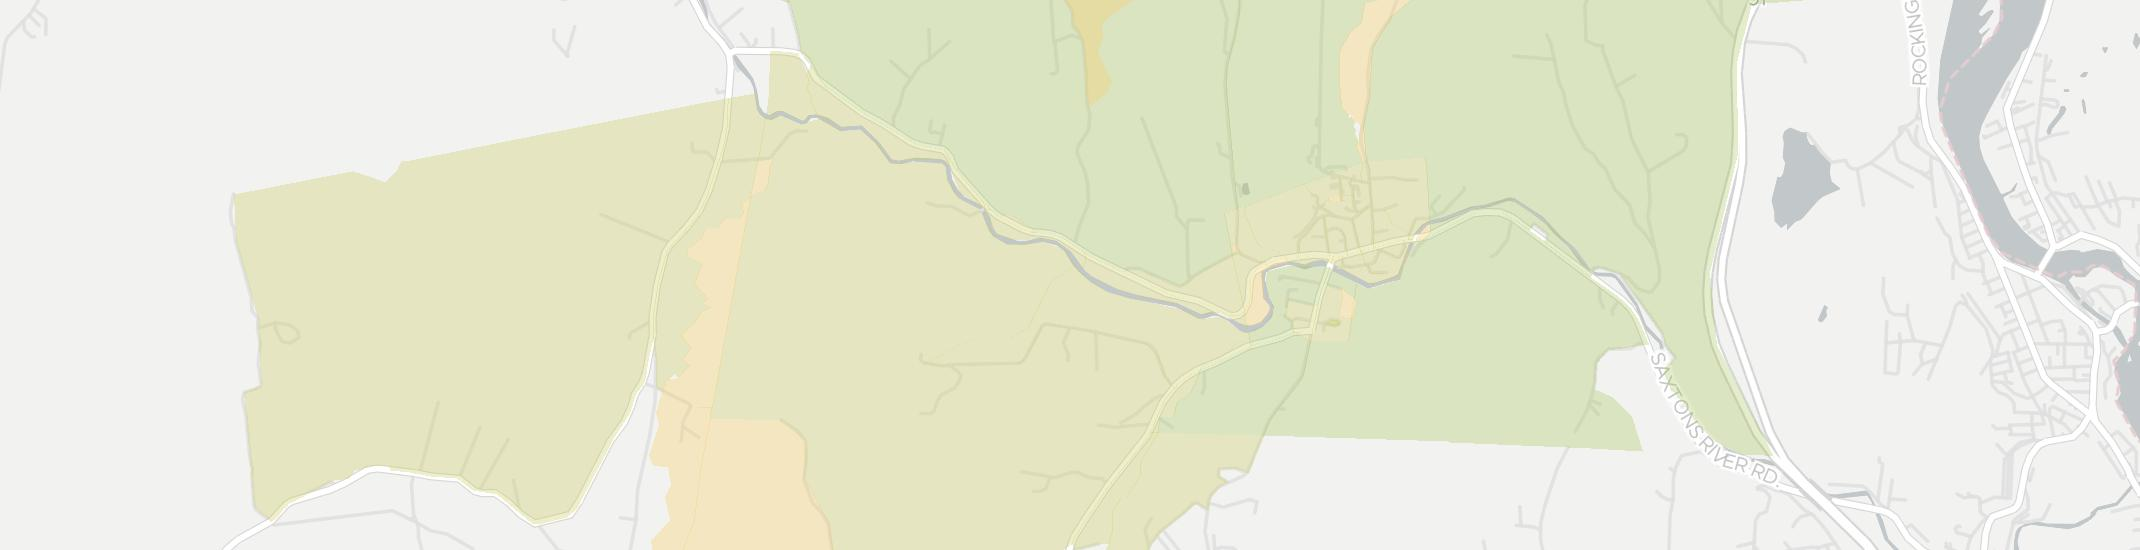 Saxtons River Internet Competition Map. Click for interactive map.